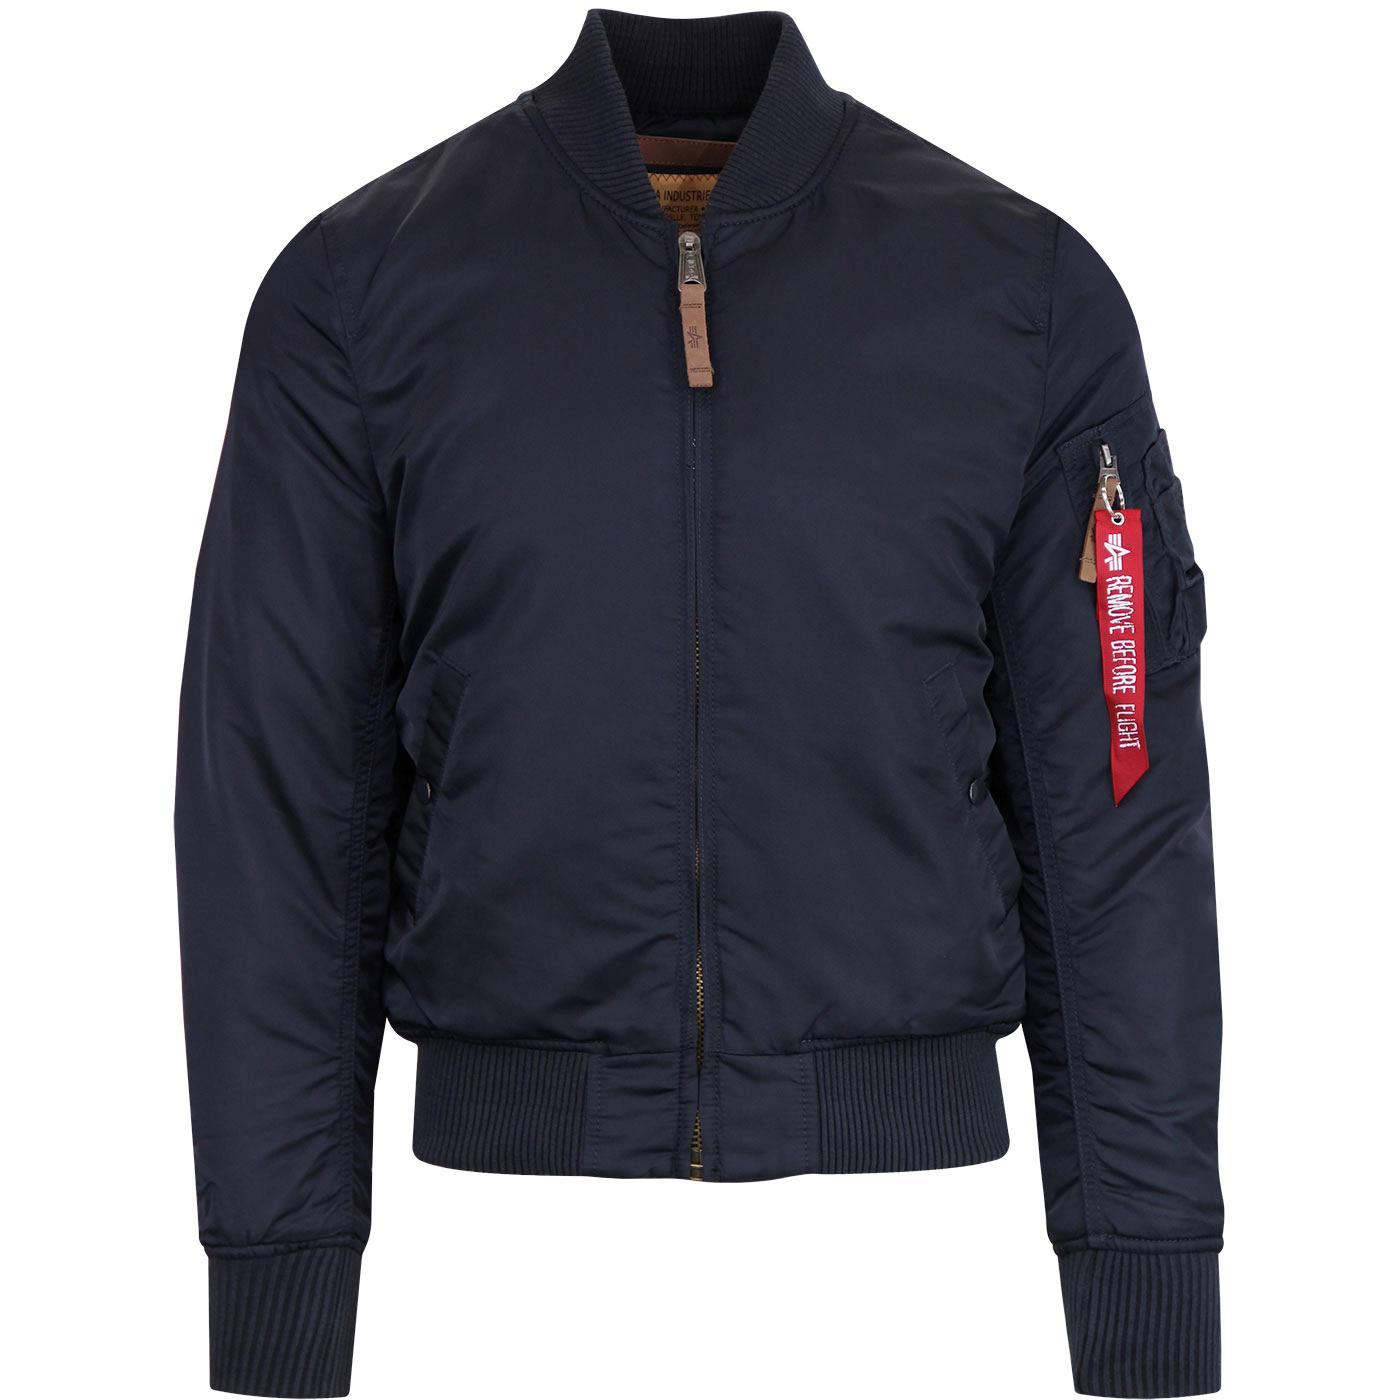 MA1 VF ALPHA INDUSTRIES Mod Bomber Jacket in Navy